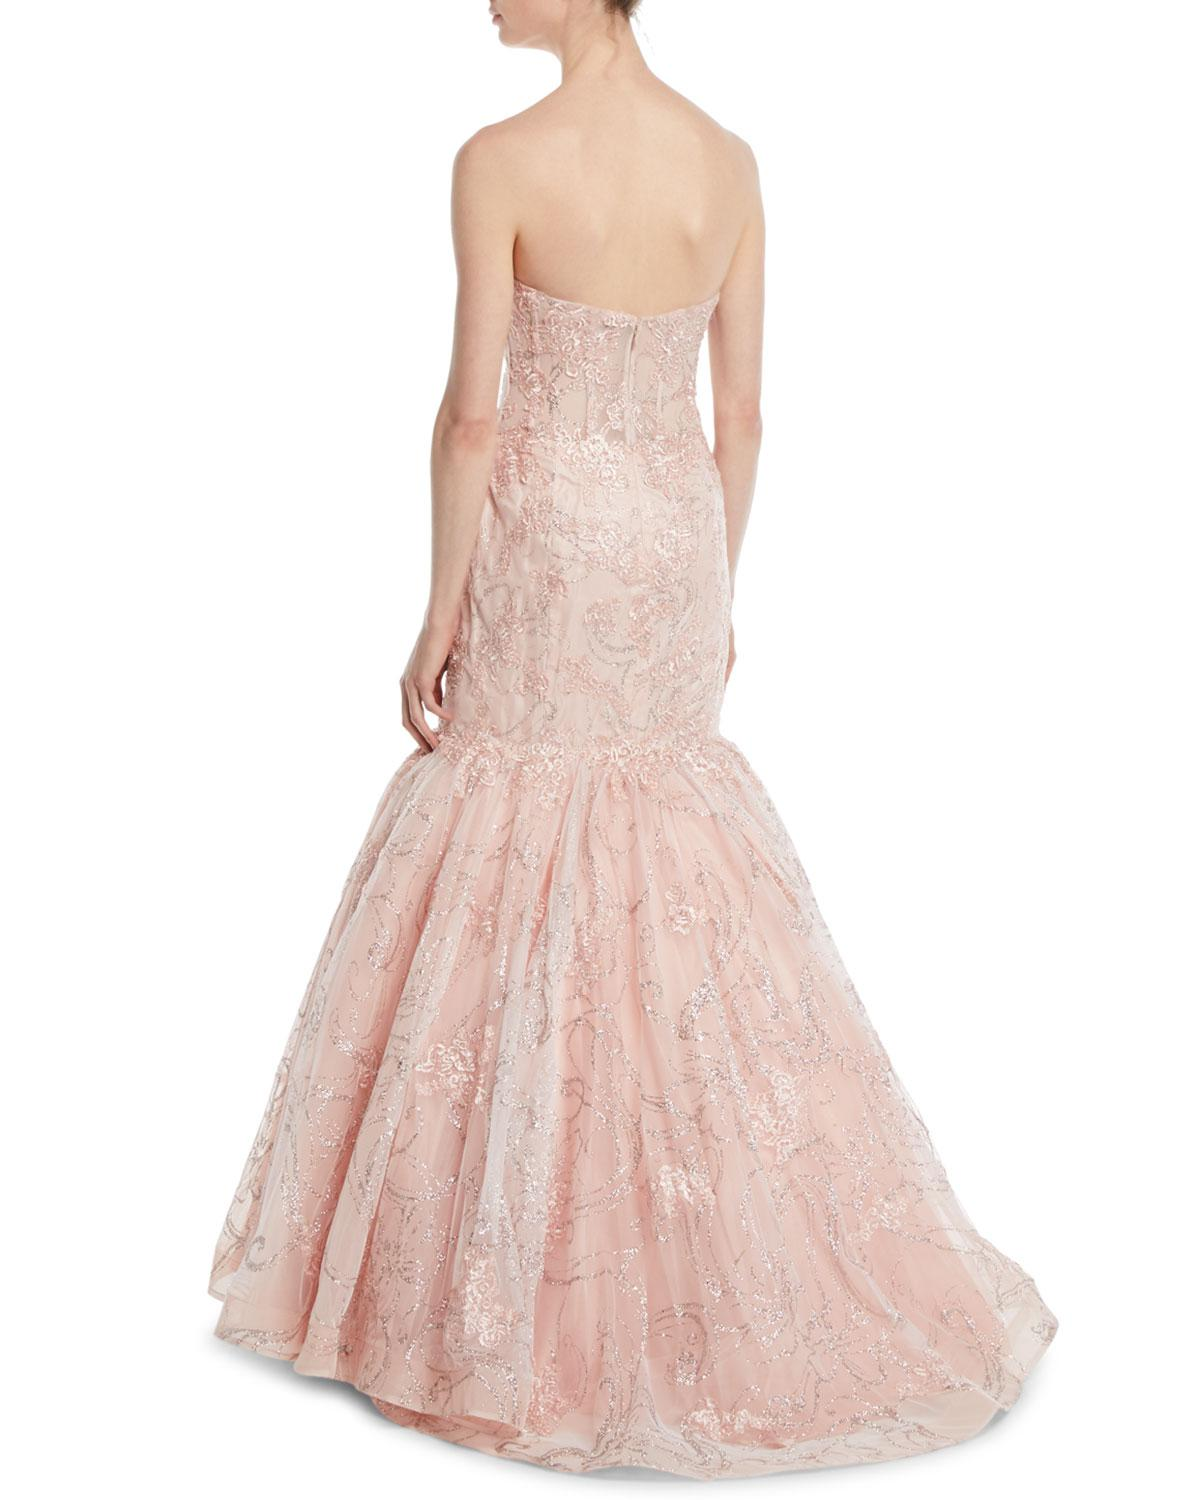 7585ed9eb767 Jovani Shimmer-lace Strapless Mermaid Gown in Pink - Lyst